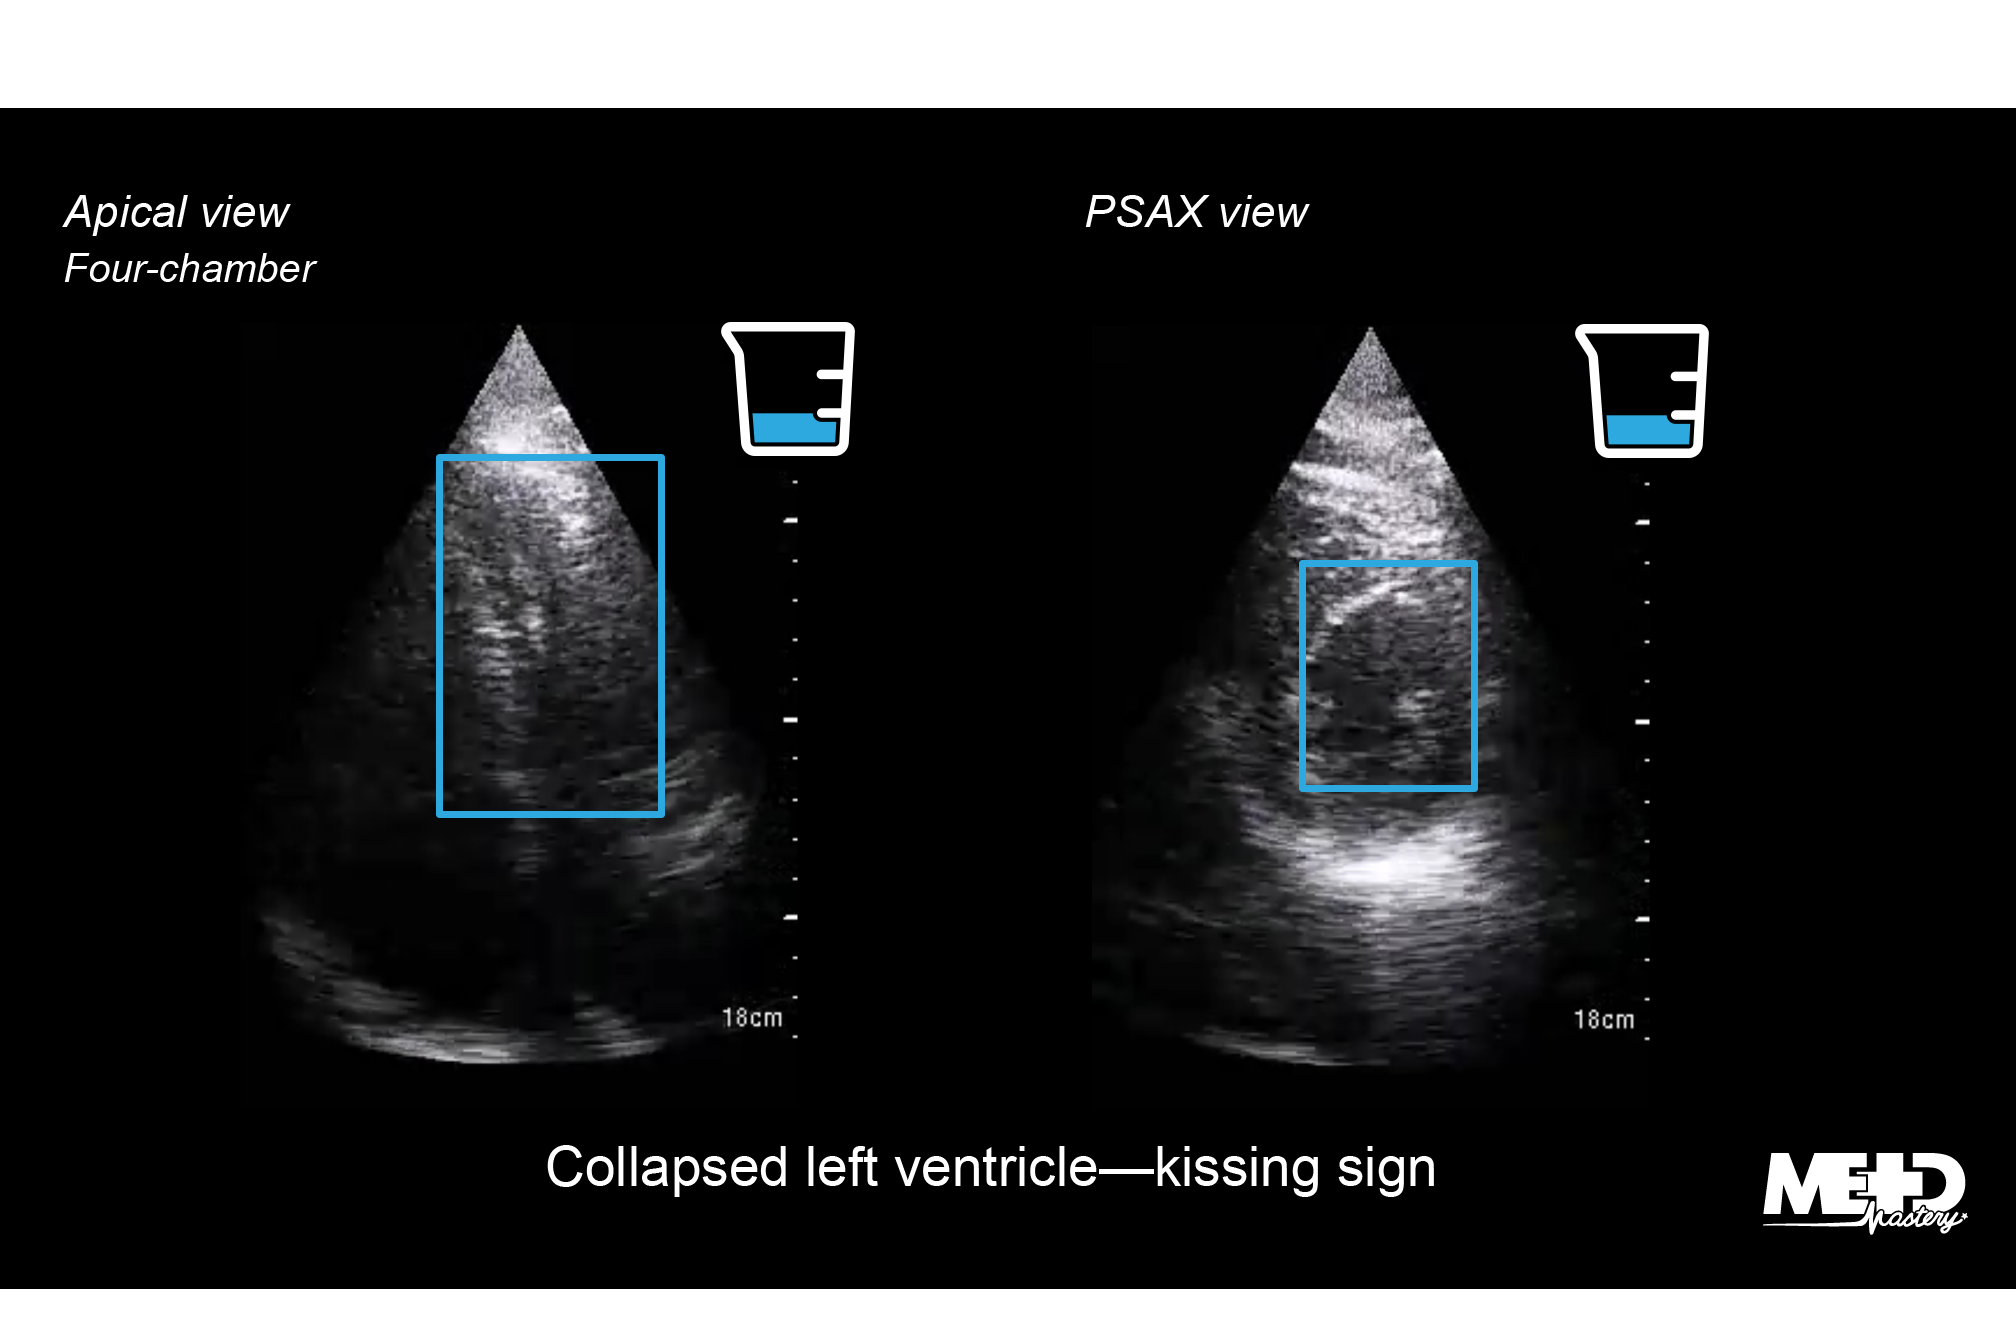 Left ventricle echocardiogram highlighting small ventricular cavity size and hyperdynamic left ventricular systolic function in patients with COVID-19.